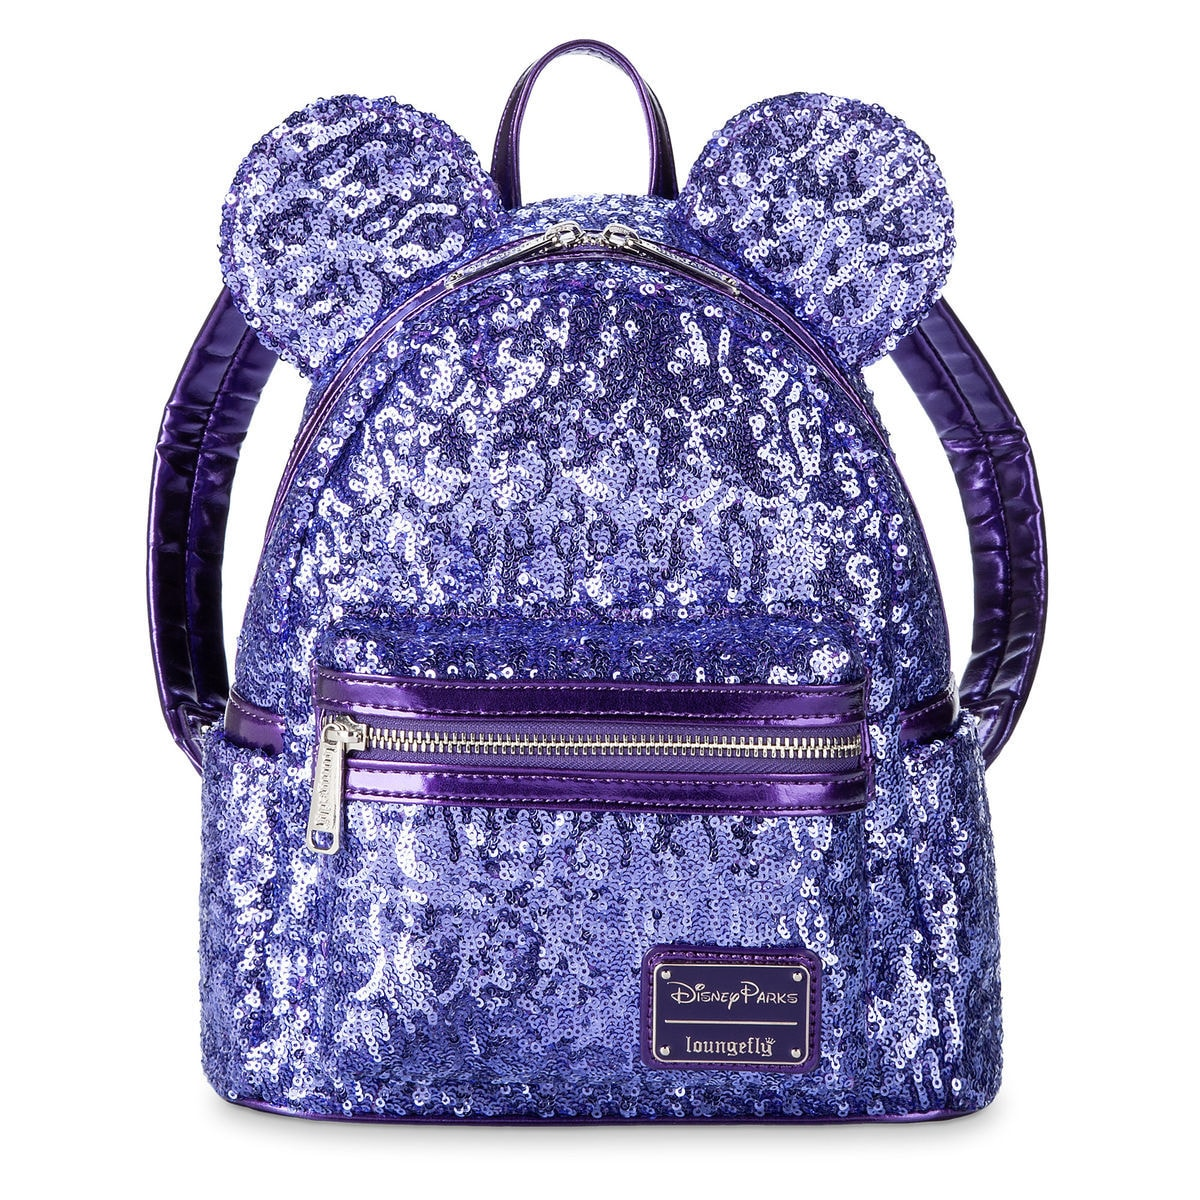 fe770f6e9772 Product Image of Minnie Mouse Potion Purple Sequined Mini Backpack by  Loungefly   1